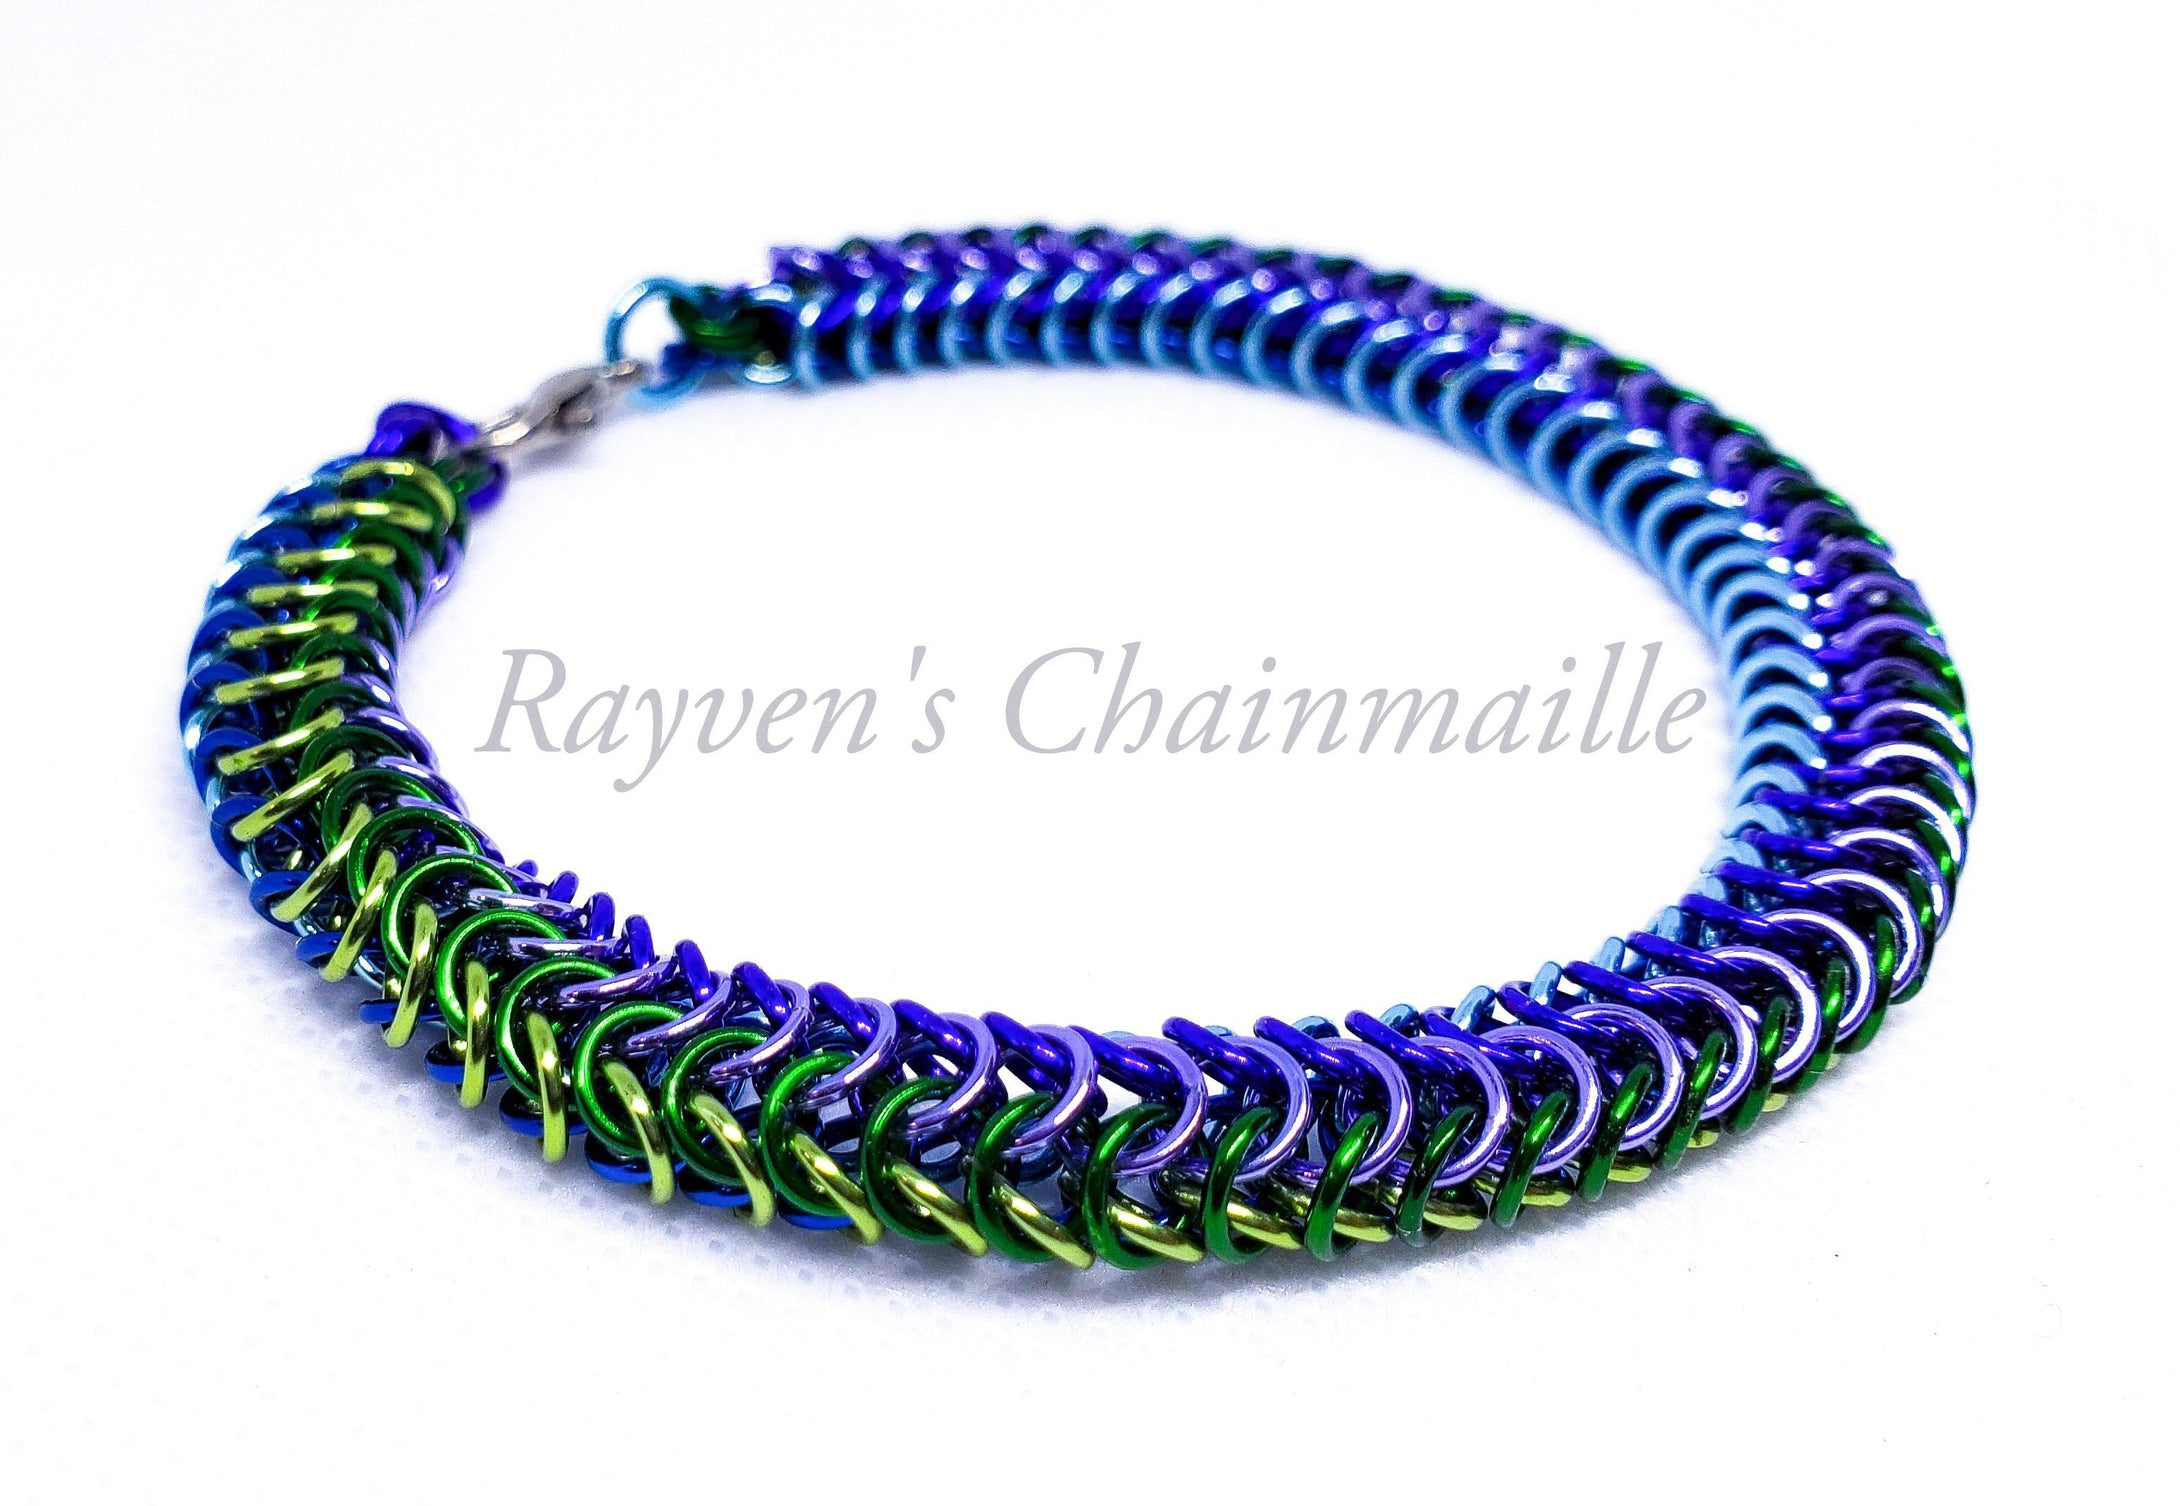 Rayven's Chainmaille| Chainmail Box Weave Bracelet